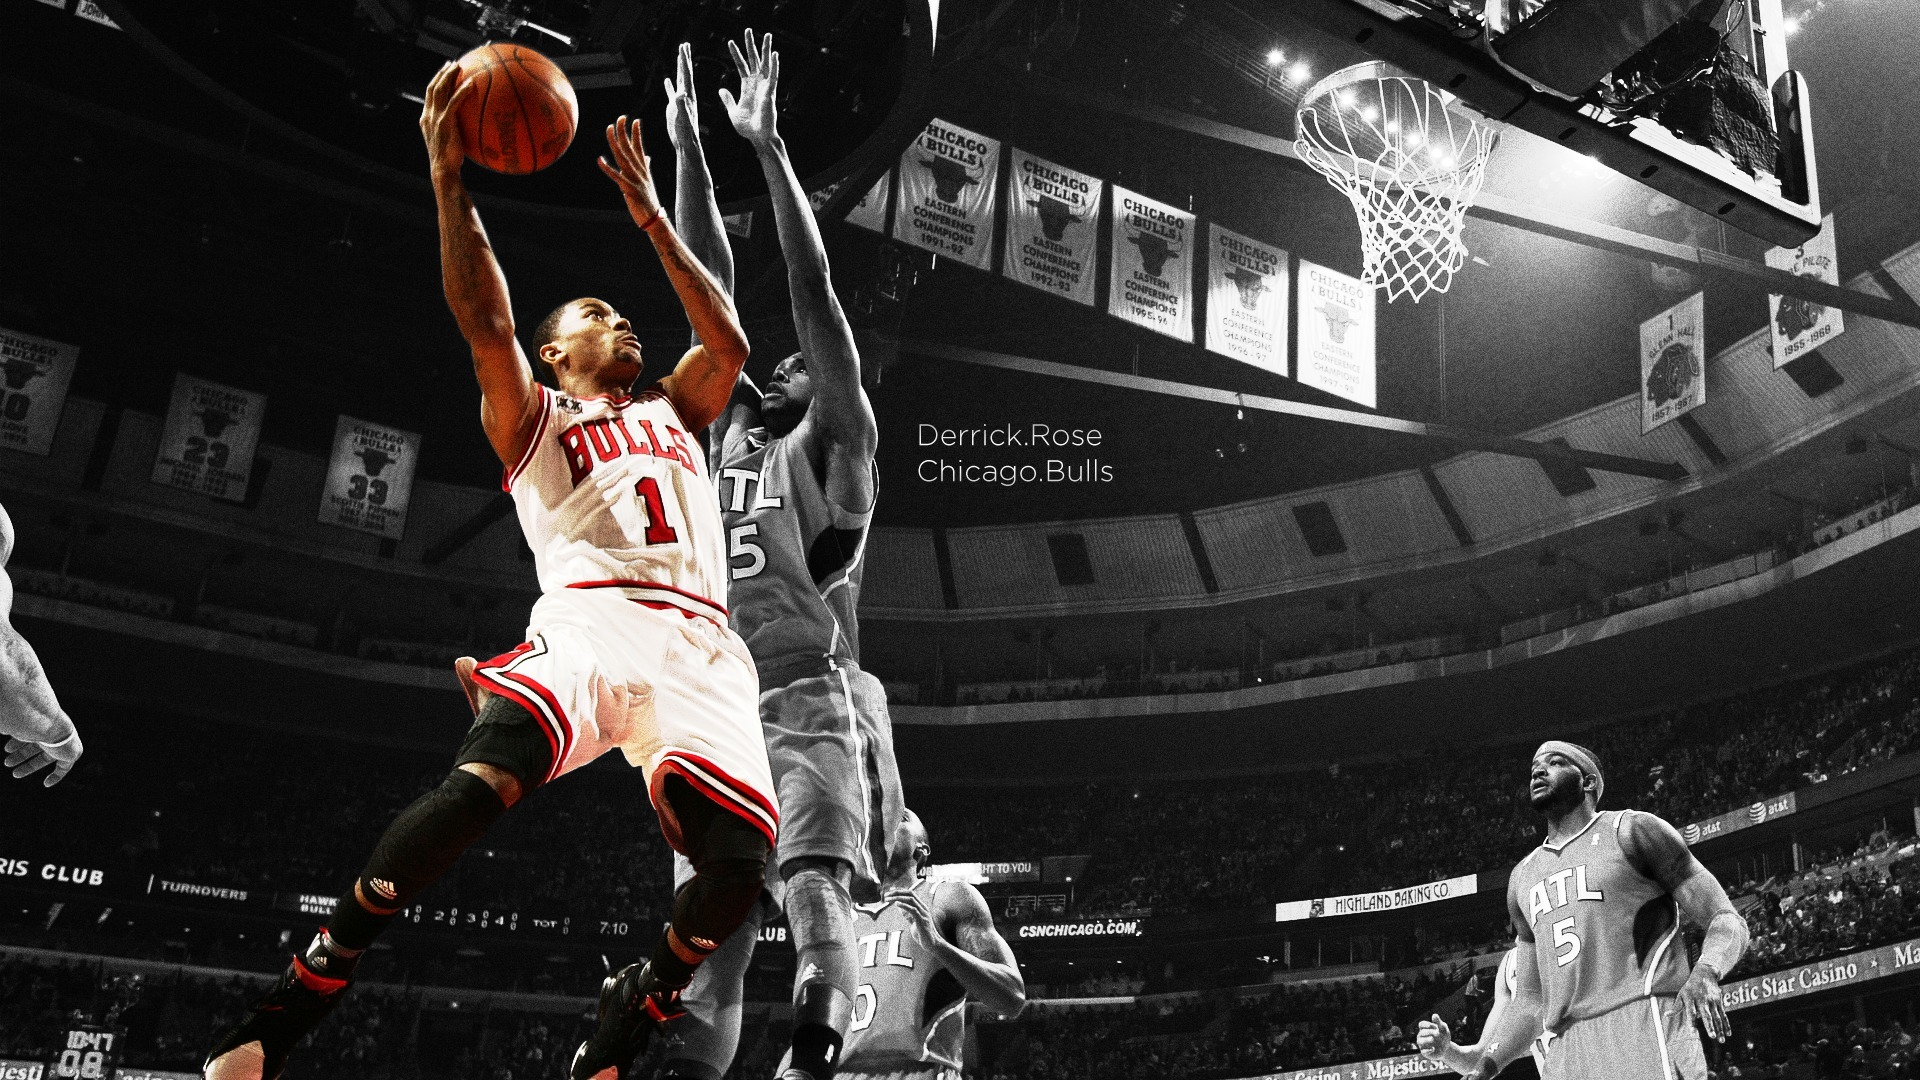 chicago bulls wallpaper (43 wallpapers) – adorable wallpapers